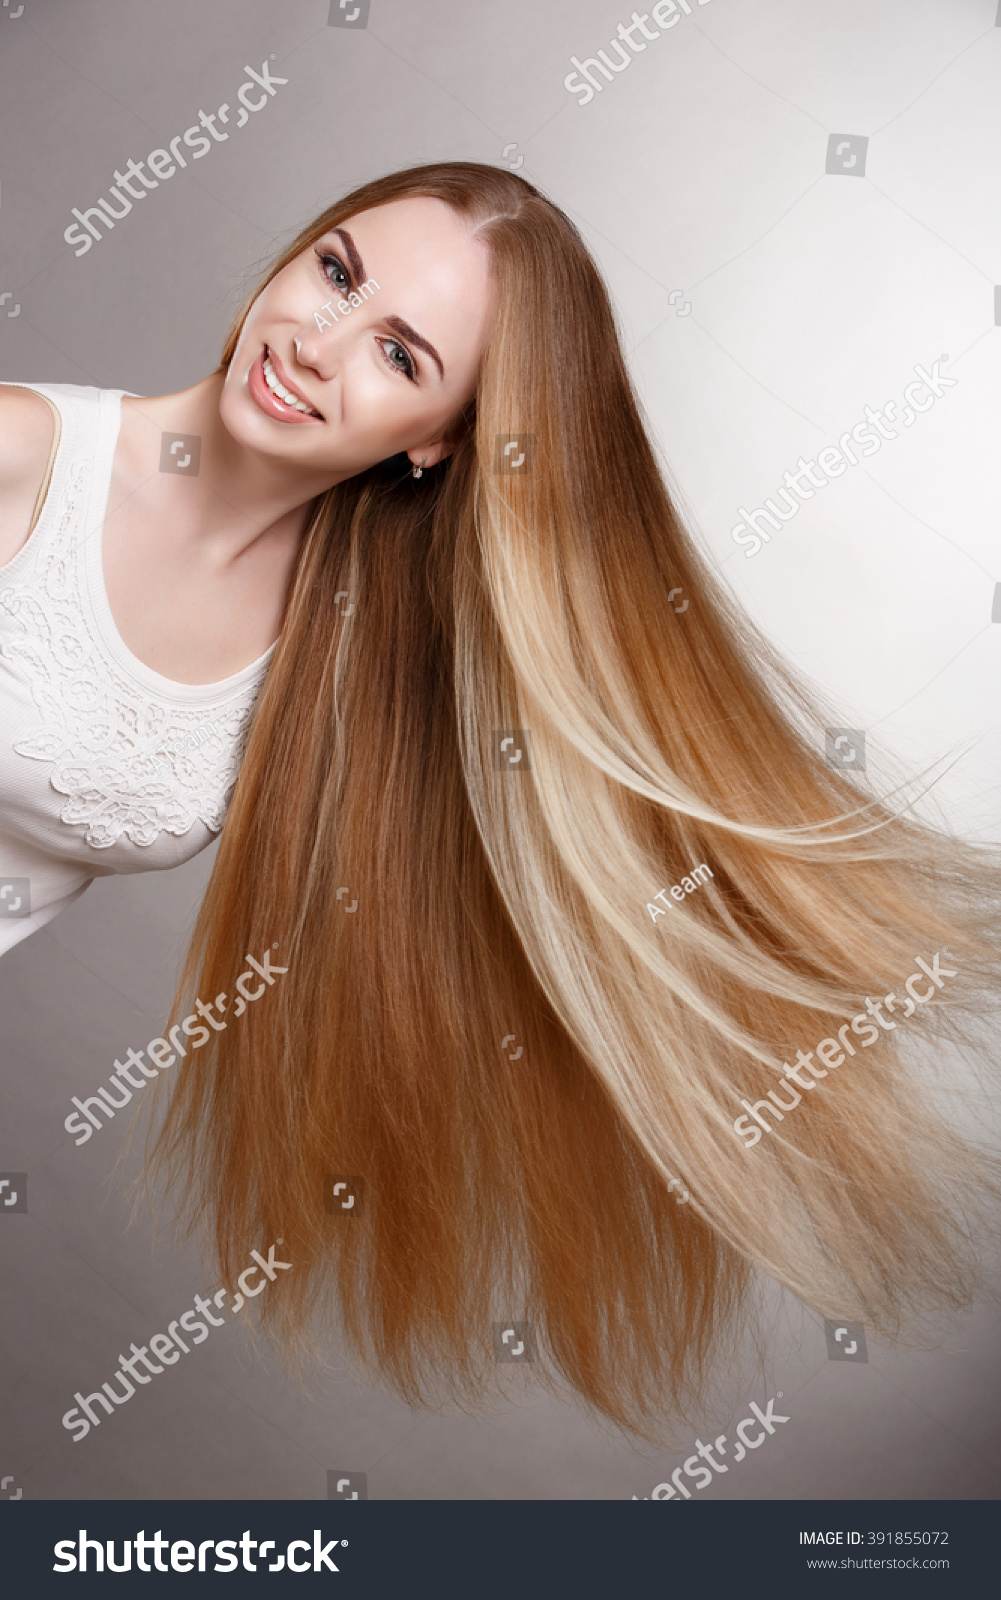 Blonde hair pictures with of woman pretty Beautiful Woman